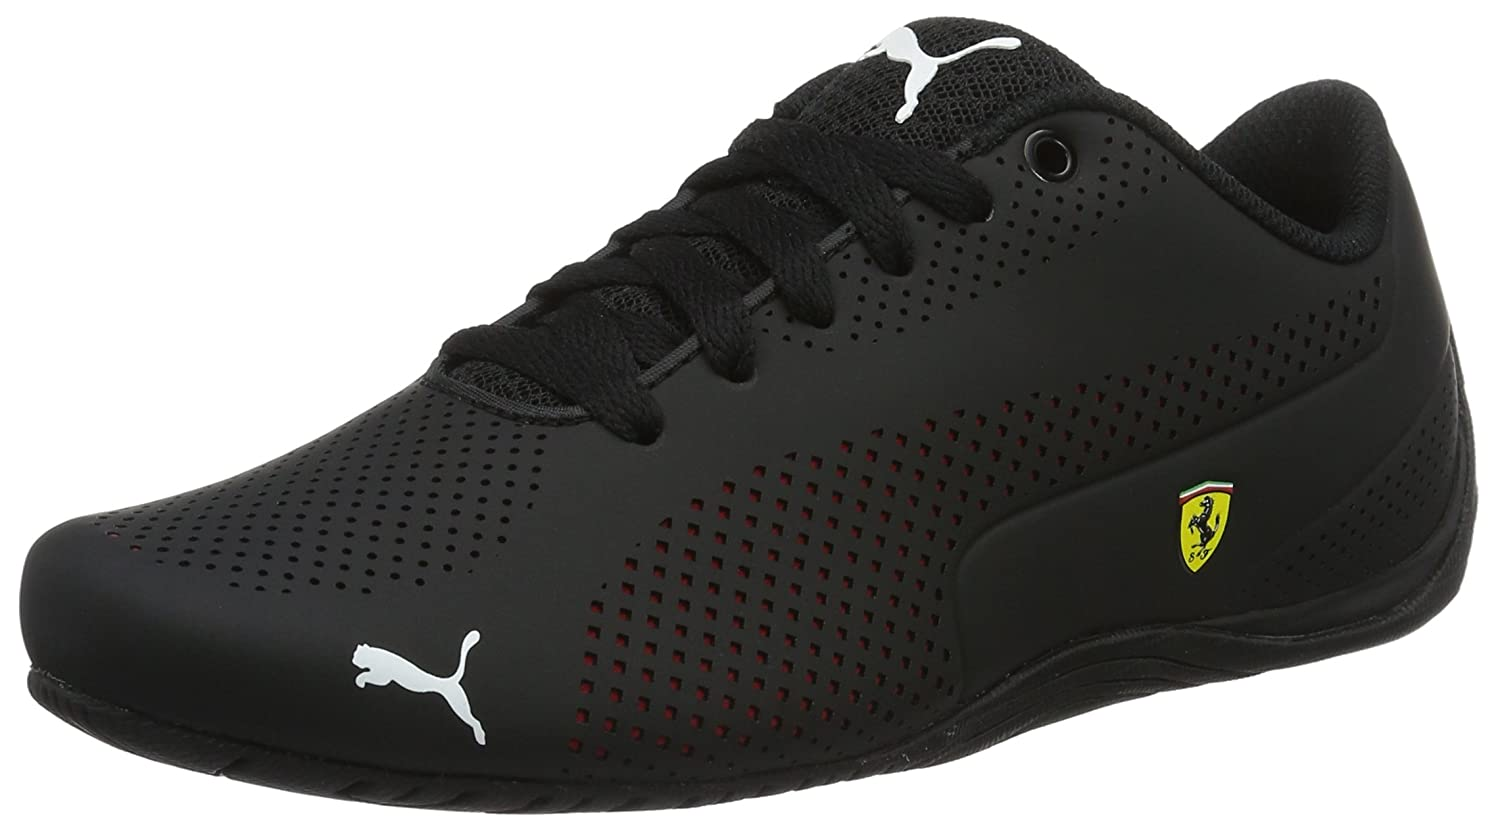 TALLA 44 EU. Puma SF Drift Cat 5 Ultra, Zapatillas Unisex Adulto